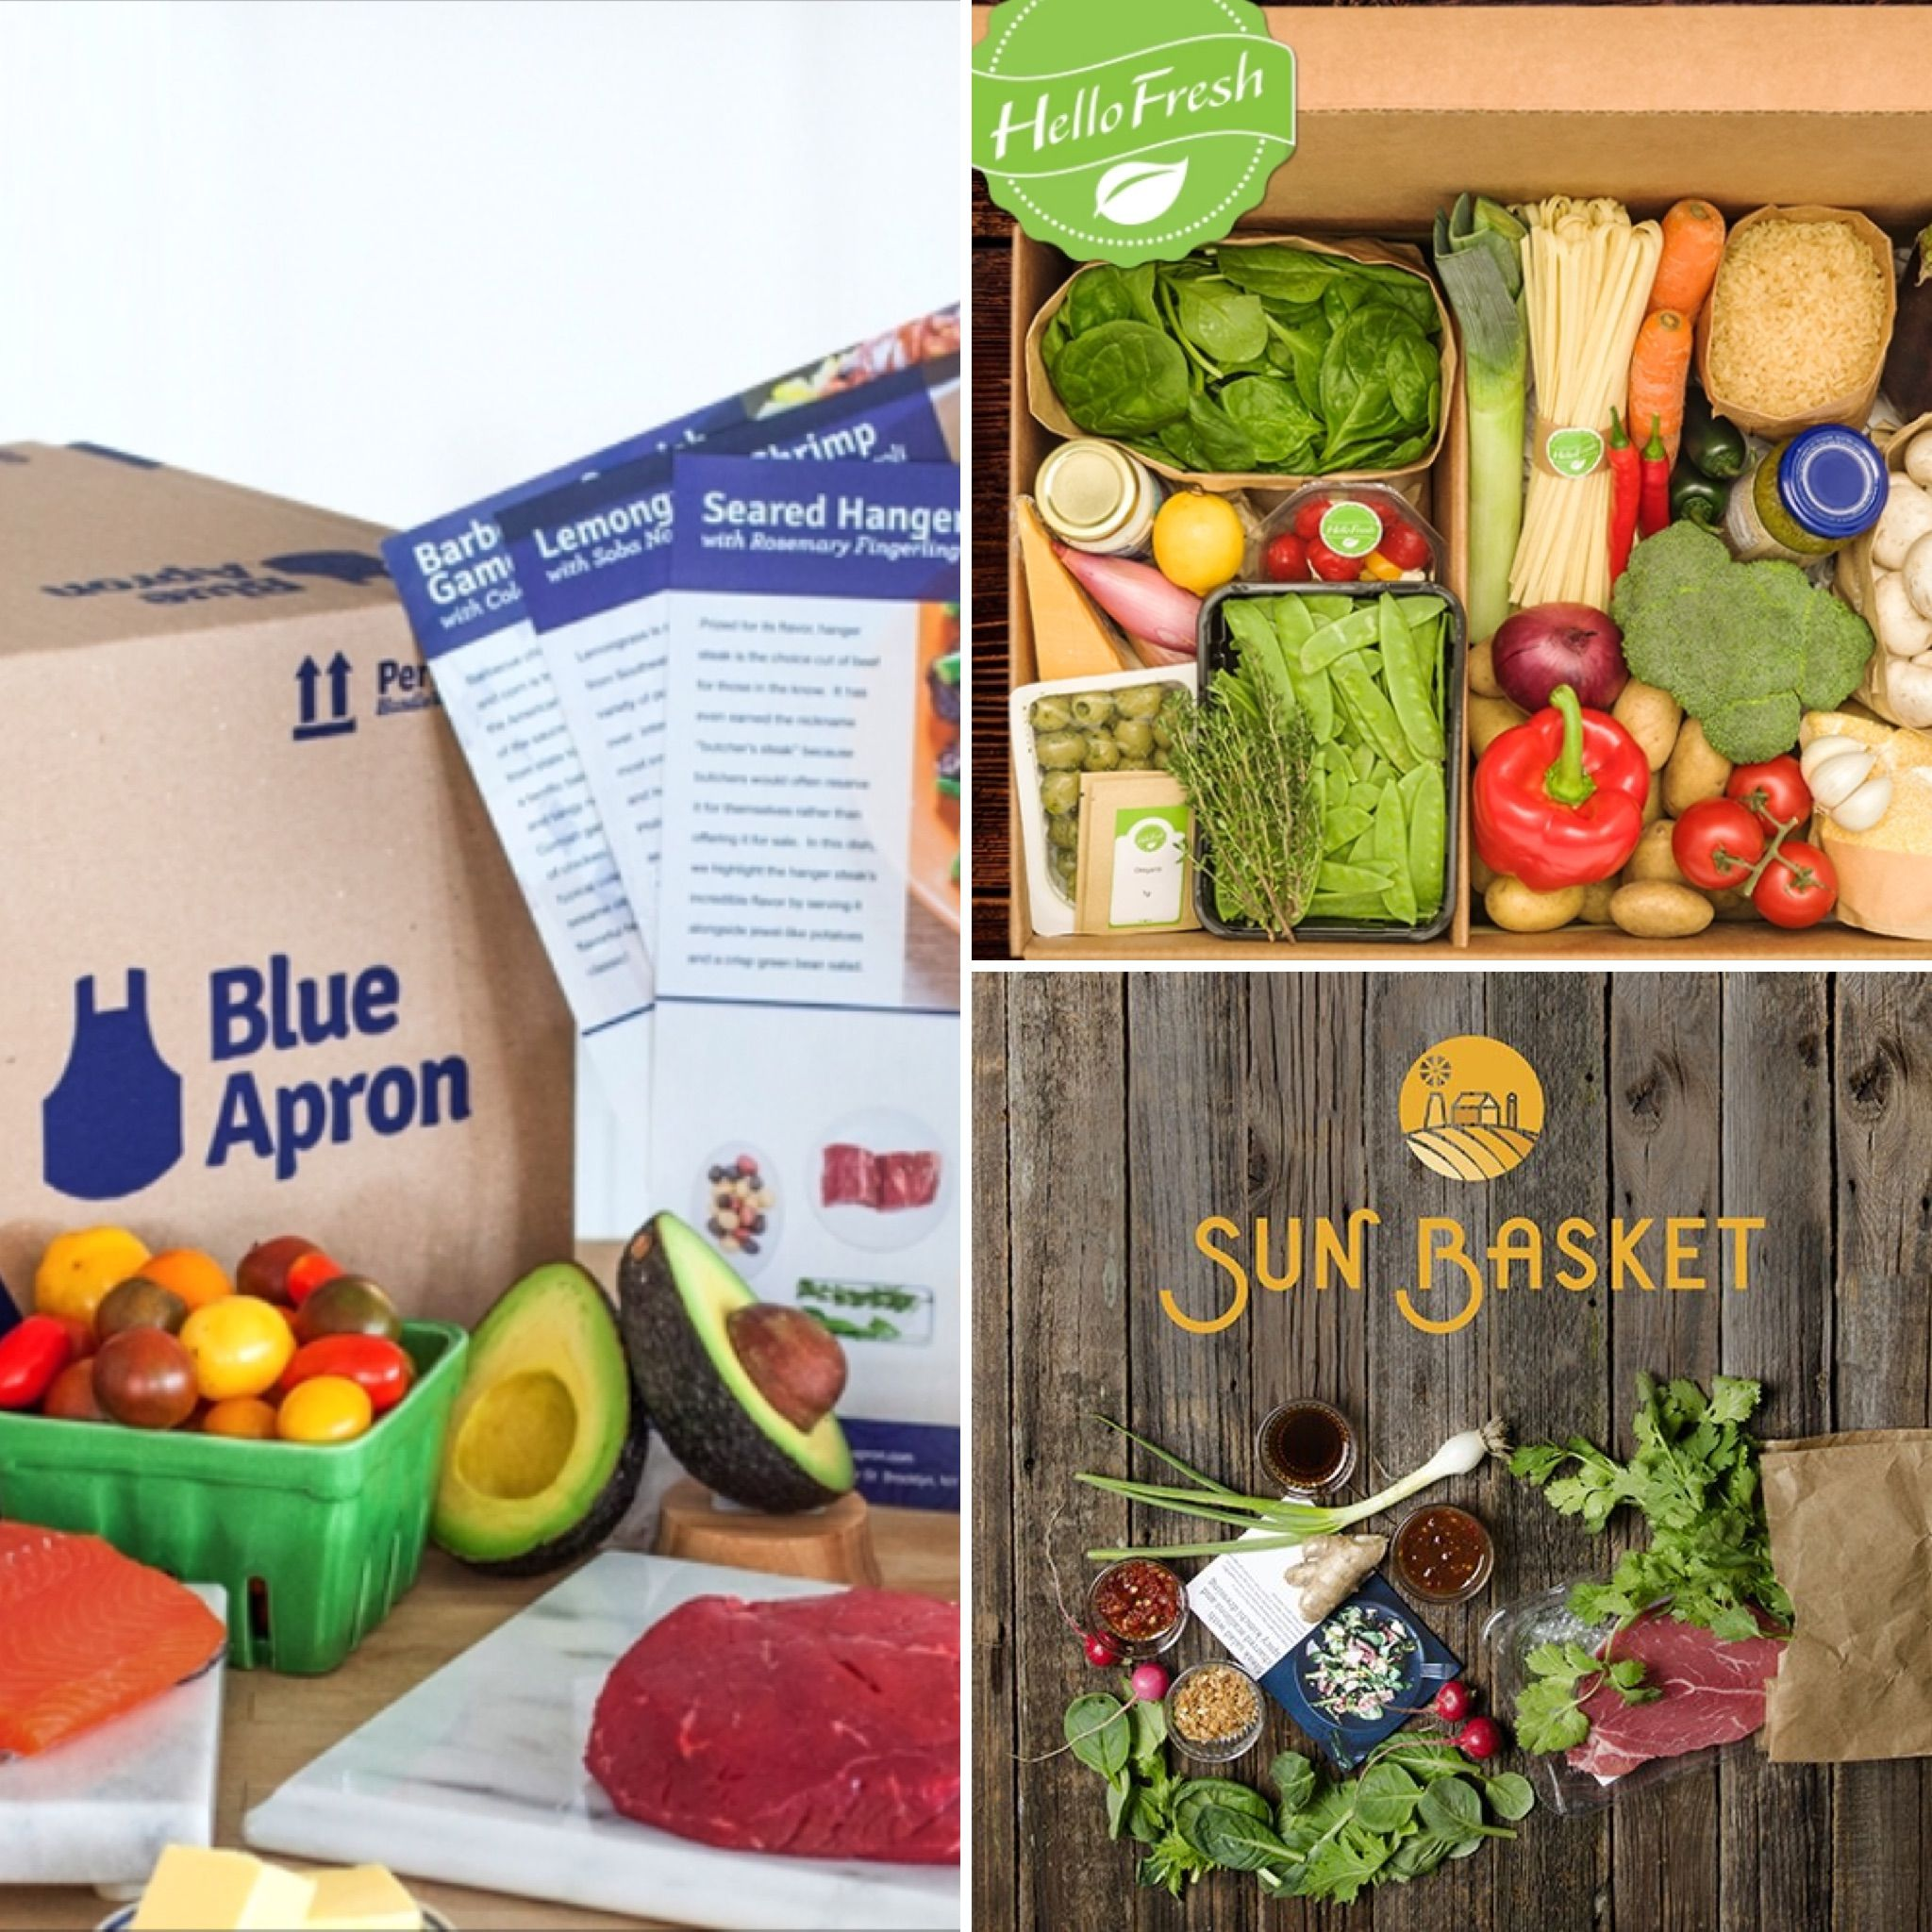 Blue apron vs hello fresh reddit